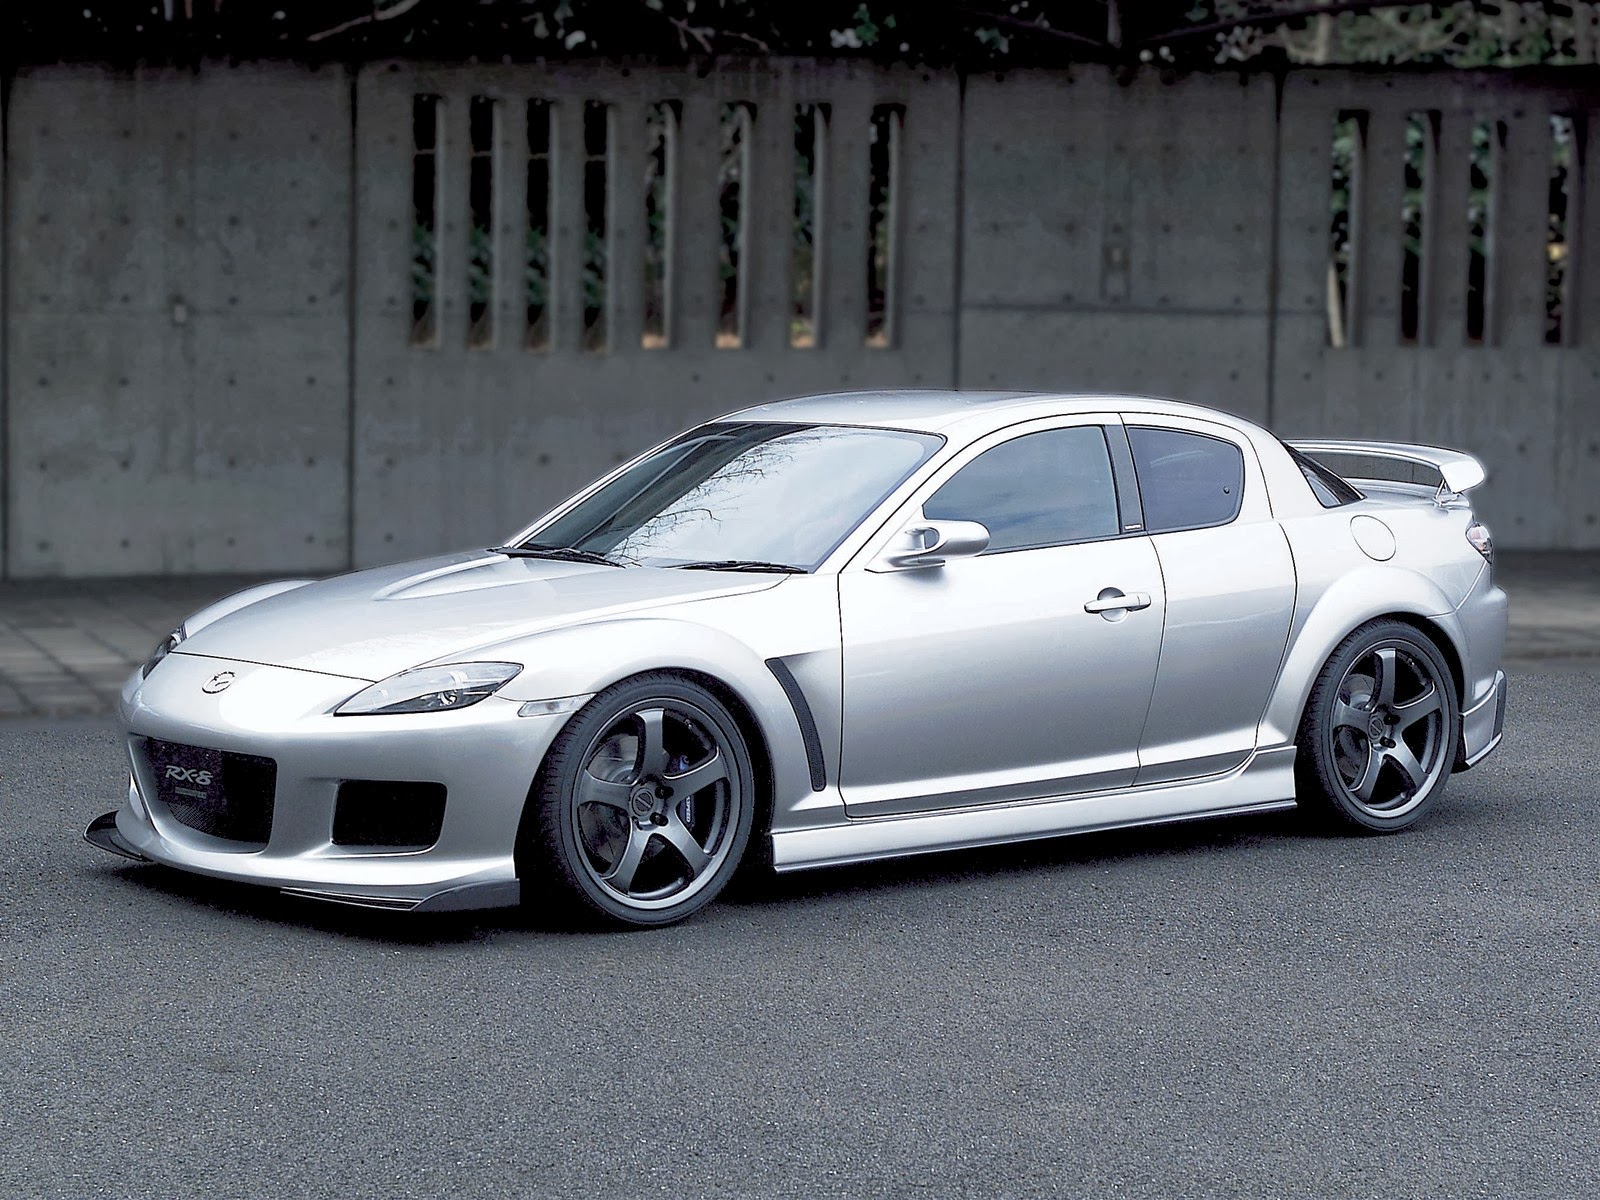 Exceptional Mazda RX 8 Fantastic Car